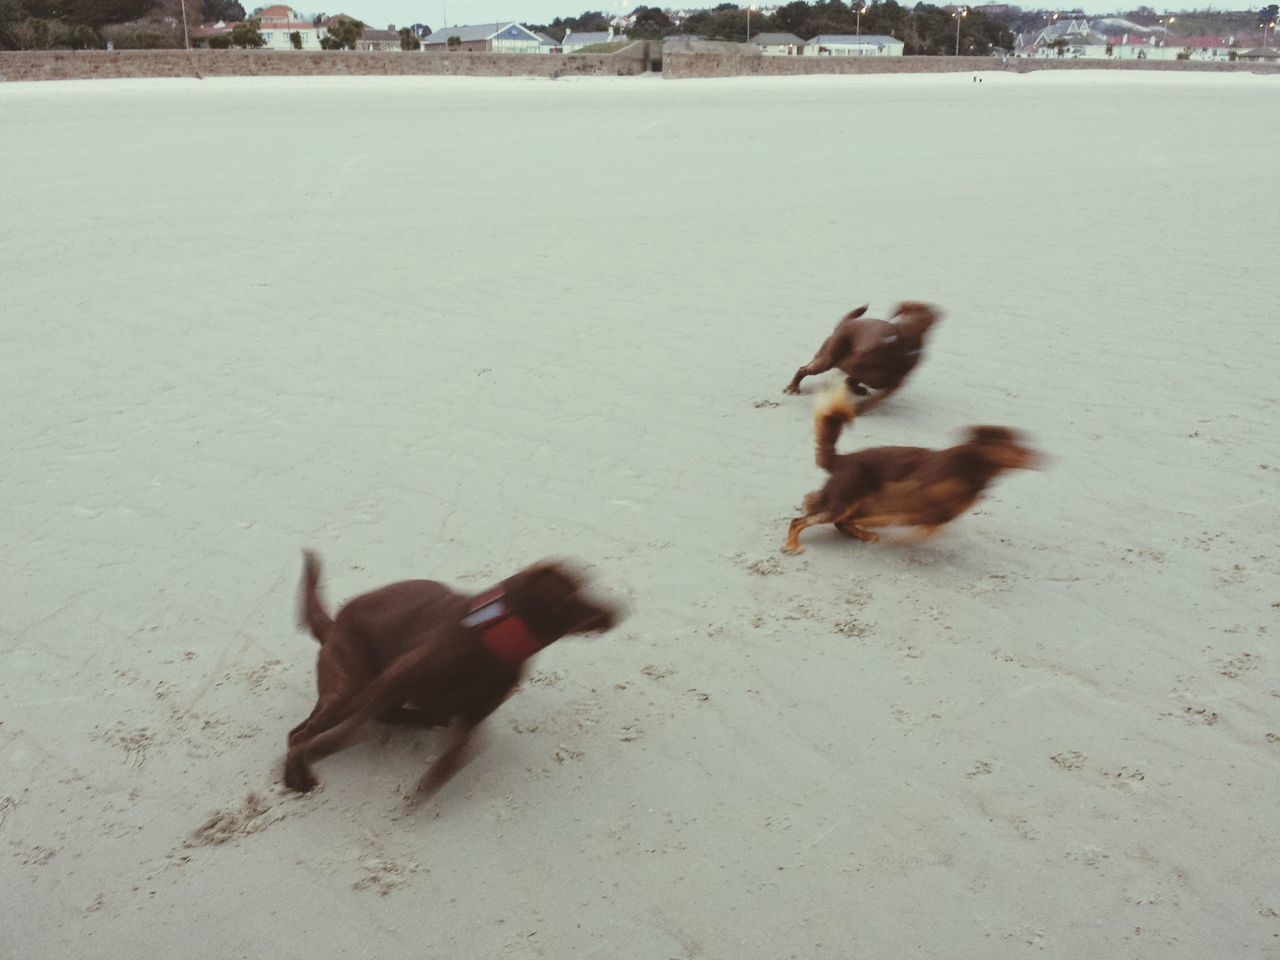 View Of Dogs Running On Beach